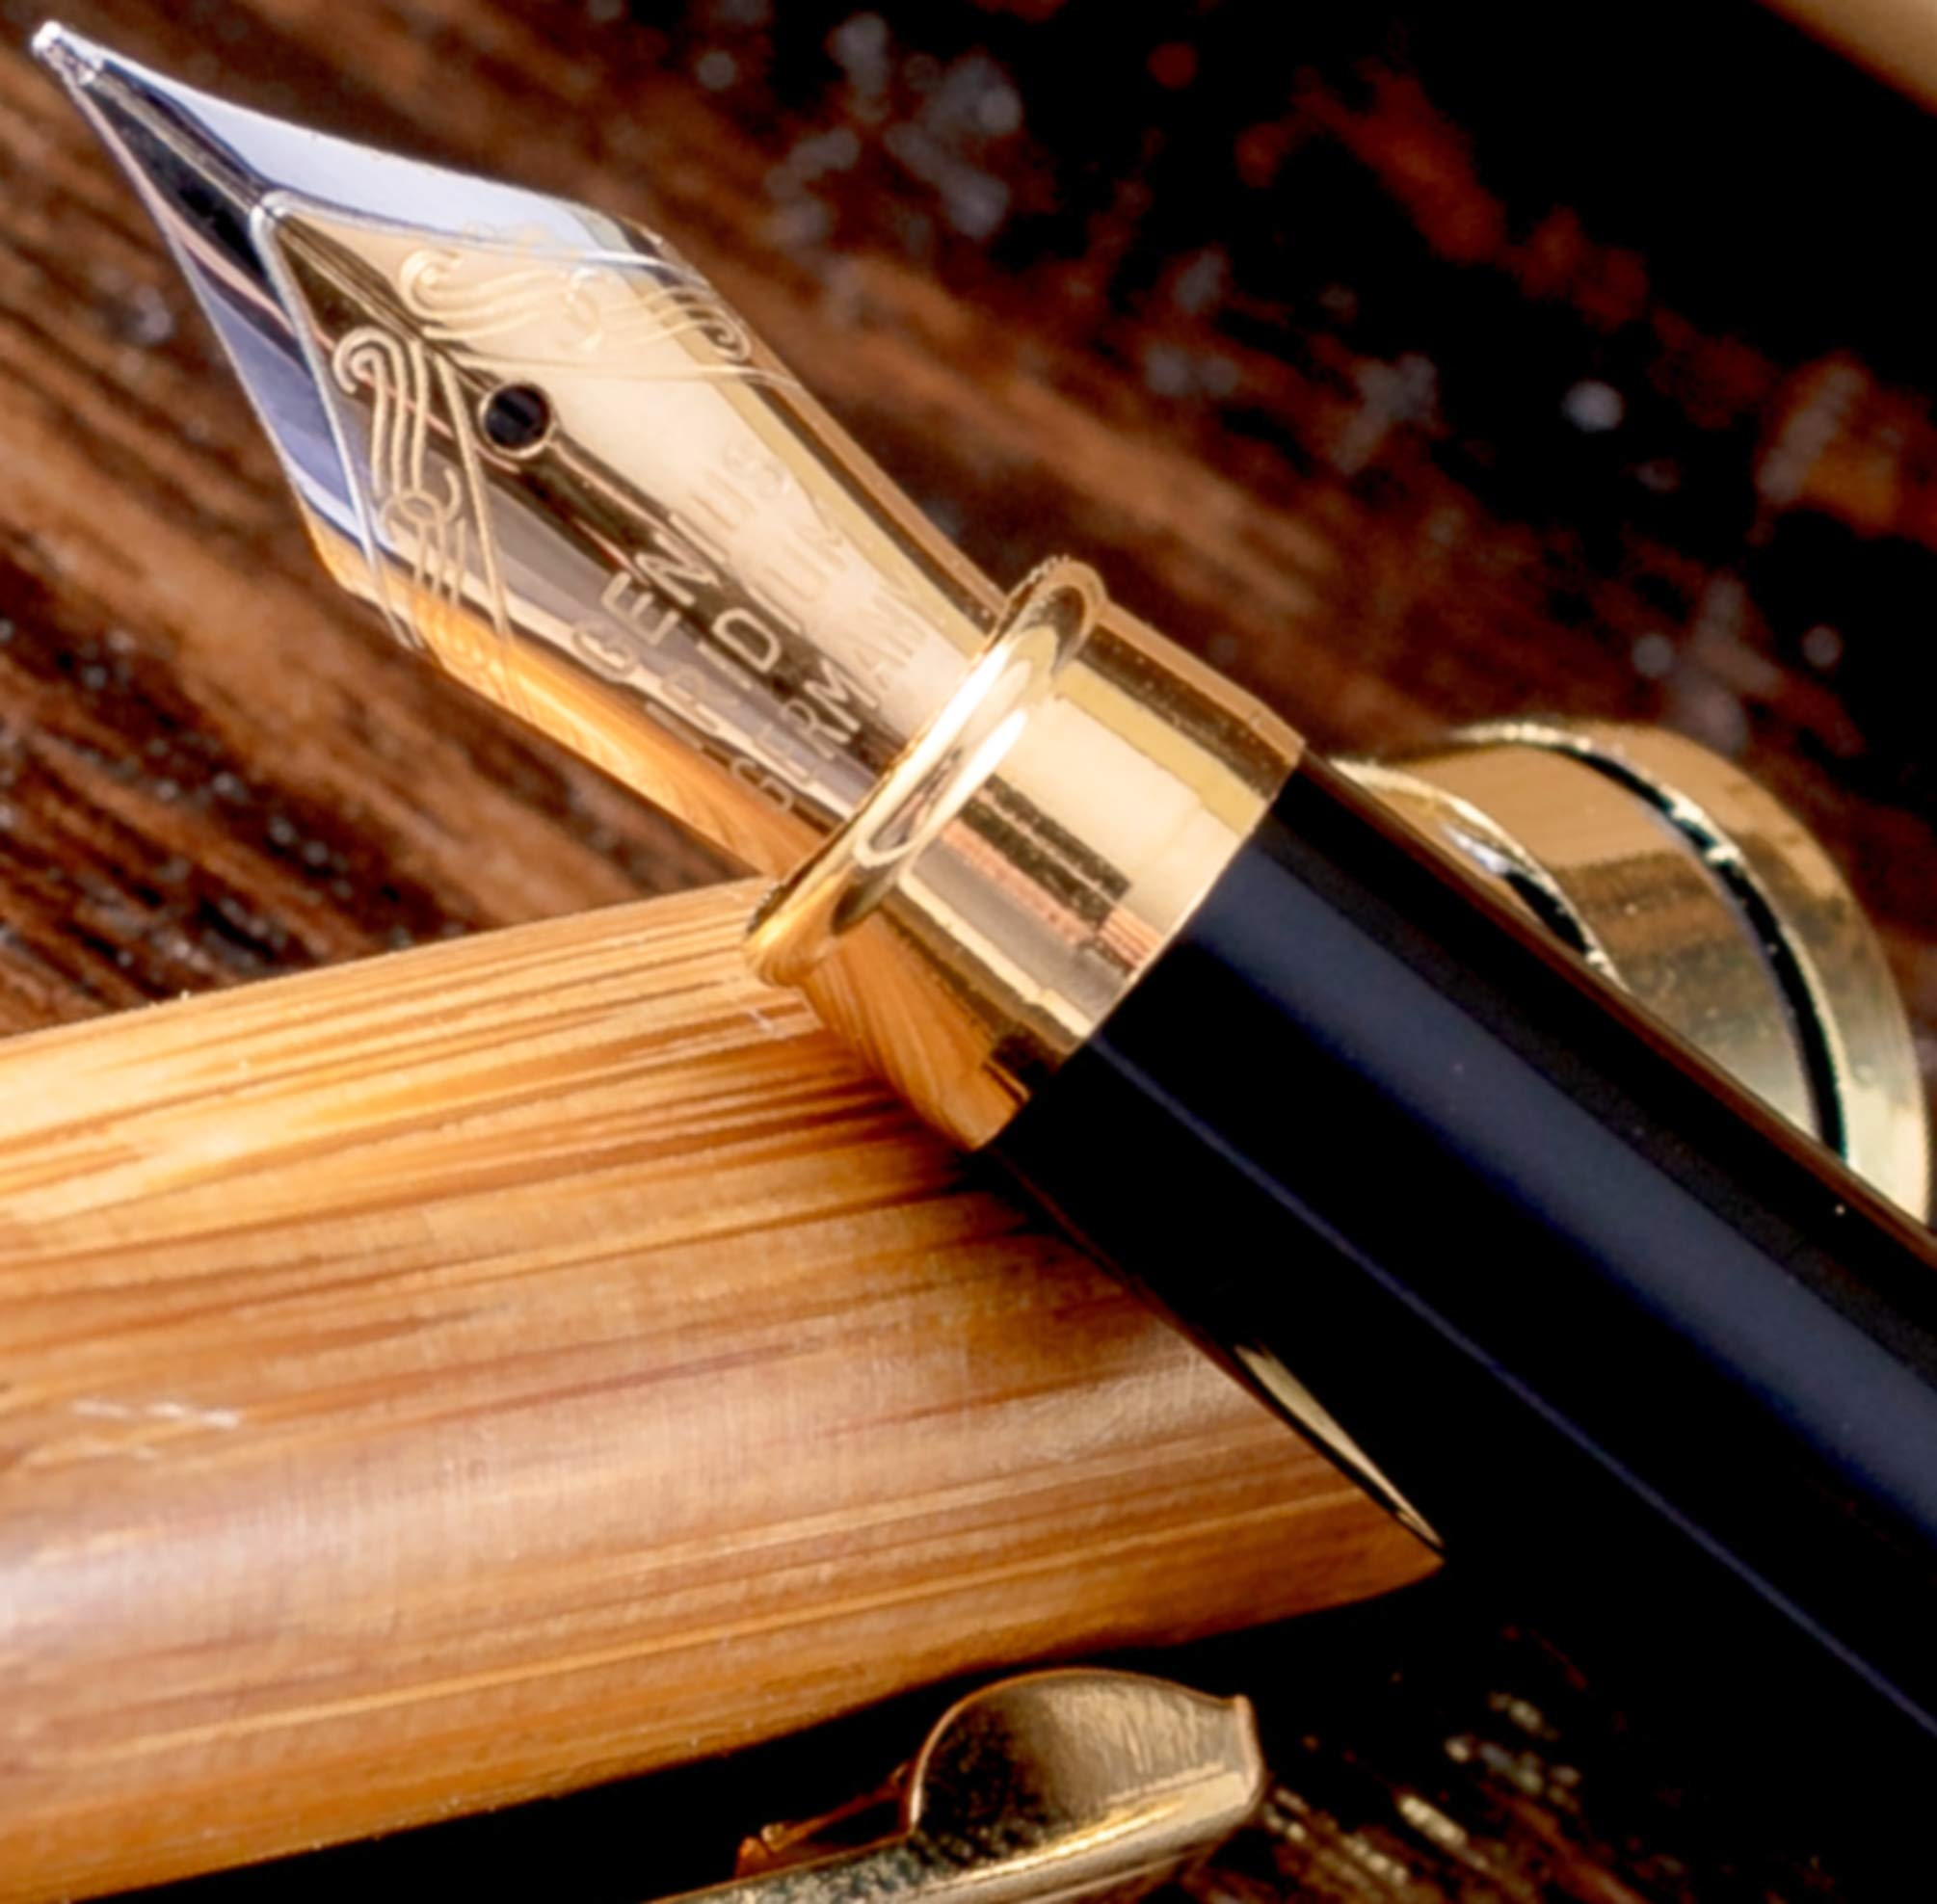 MONAGGIO Gorgeous Bamboo Fountain Pen made of Luxury Wood with Refillable Converter, Beautiful Wooden Case Set and Medium Nib Point. Works Smoothly with Disposable Cartridges. Fine Calligraphy Pens!